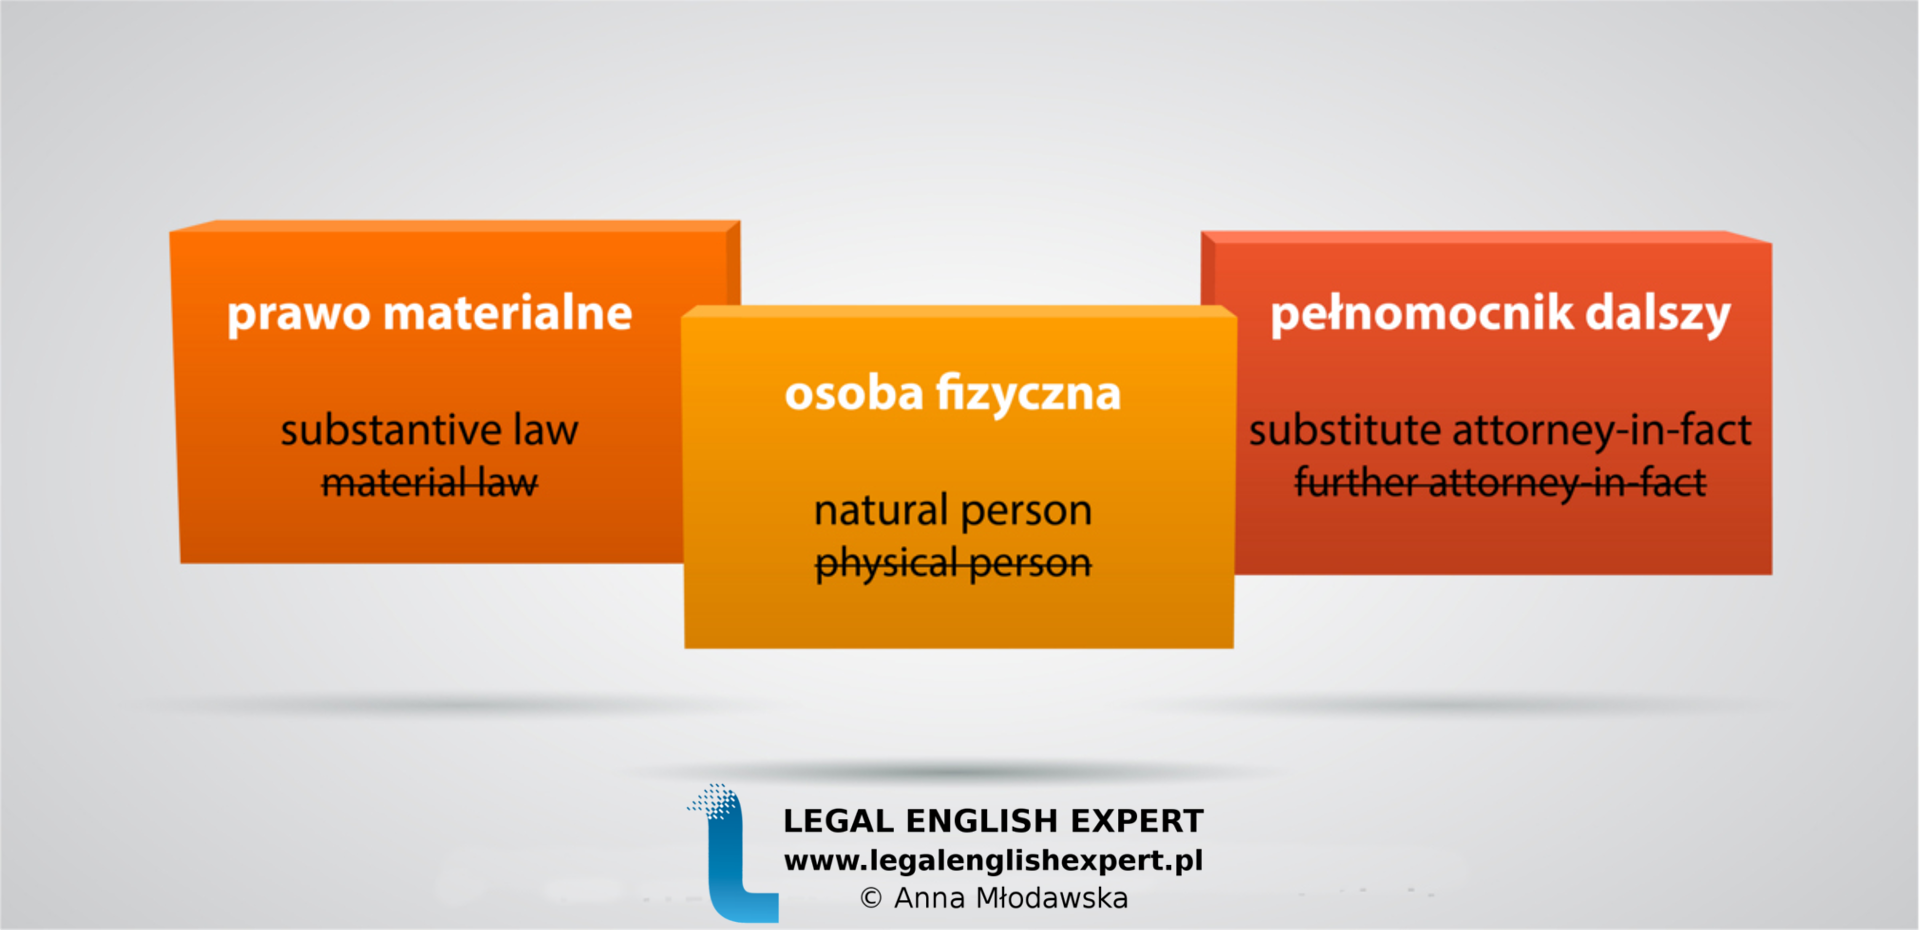 LEGAL ENGLISH EXPERT - infografika_18 - false friends - osoba fizyczna, prawo materialne